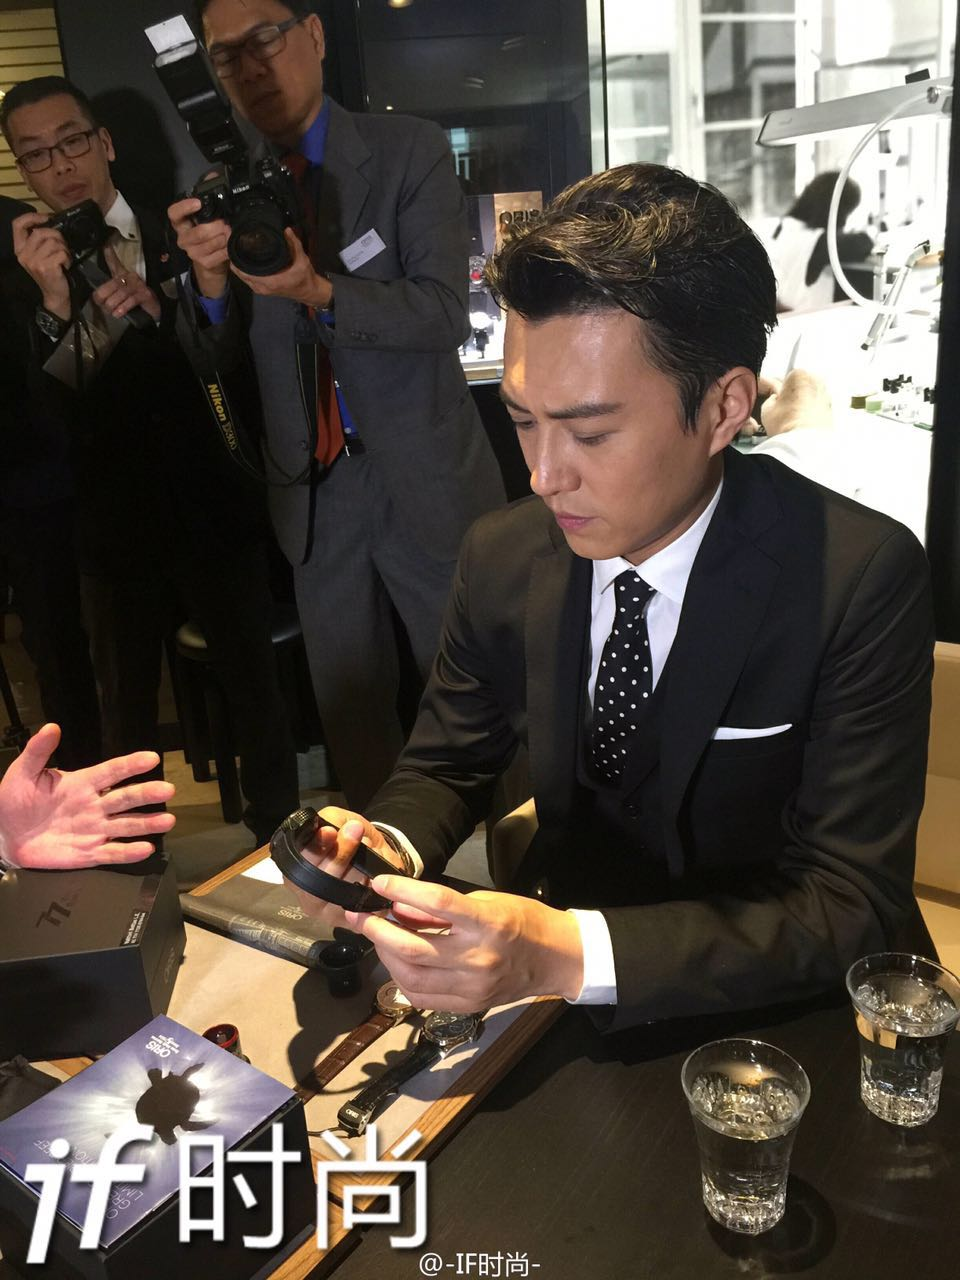 In these pictures, Jin Dong is looking at a watch from Oris, a Swiss luxury watchmaker brand located in Basel (which is unusual).